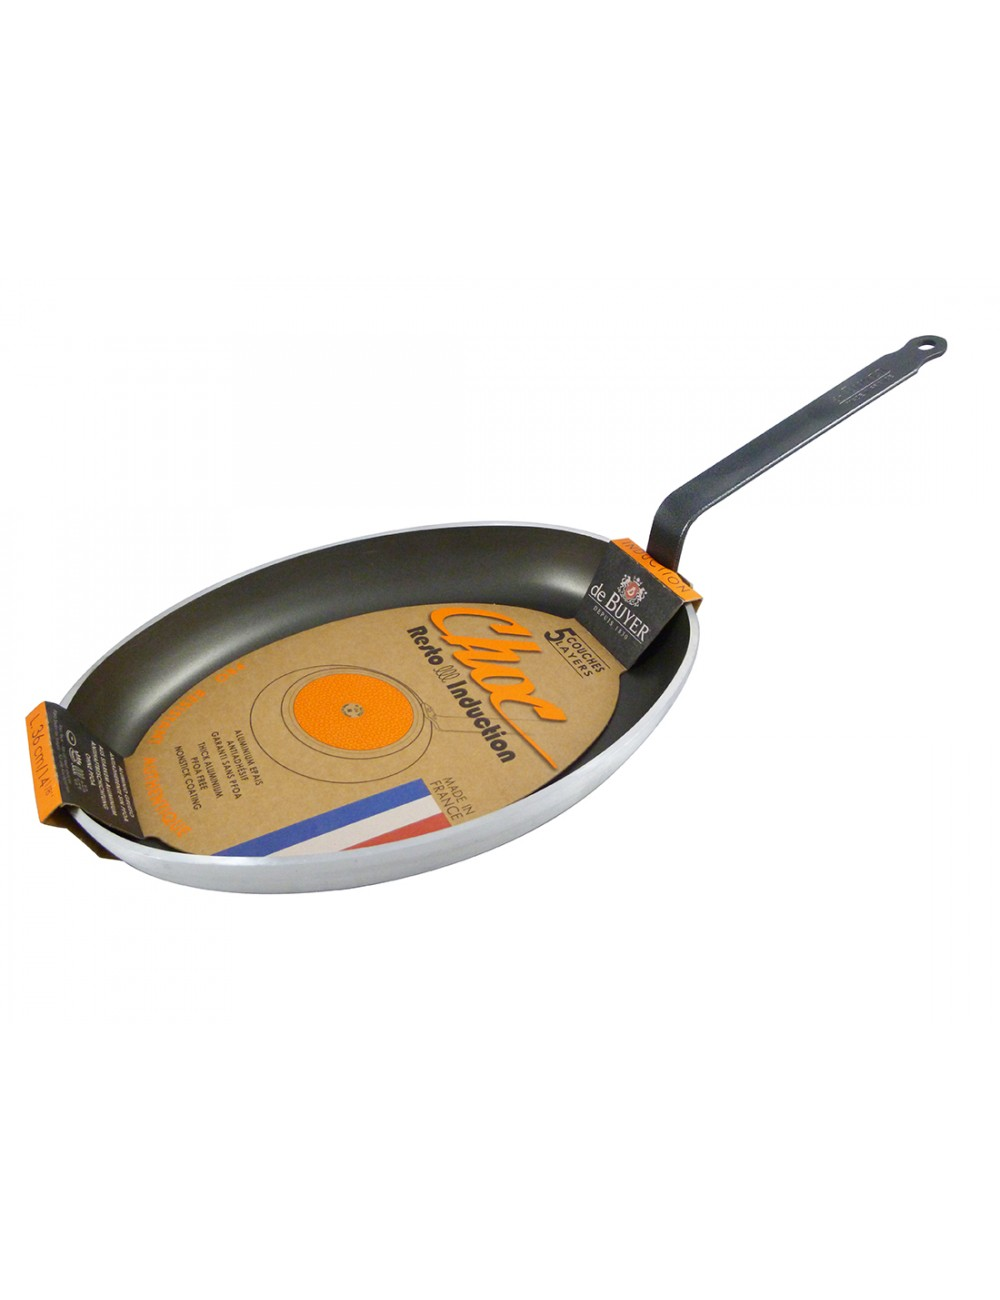 FISH OVAL NON-STICK FRYPAN - CHOC INDUCTION